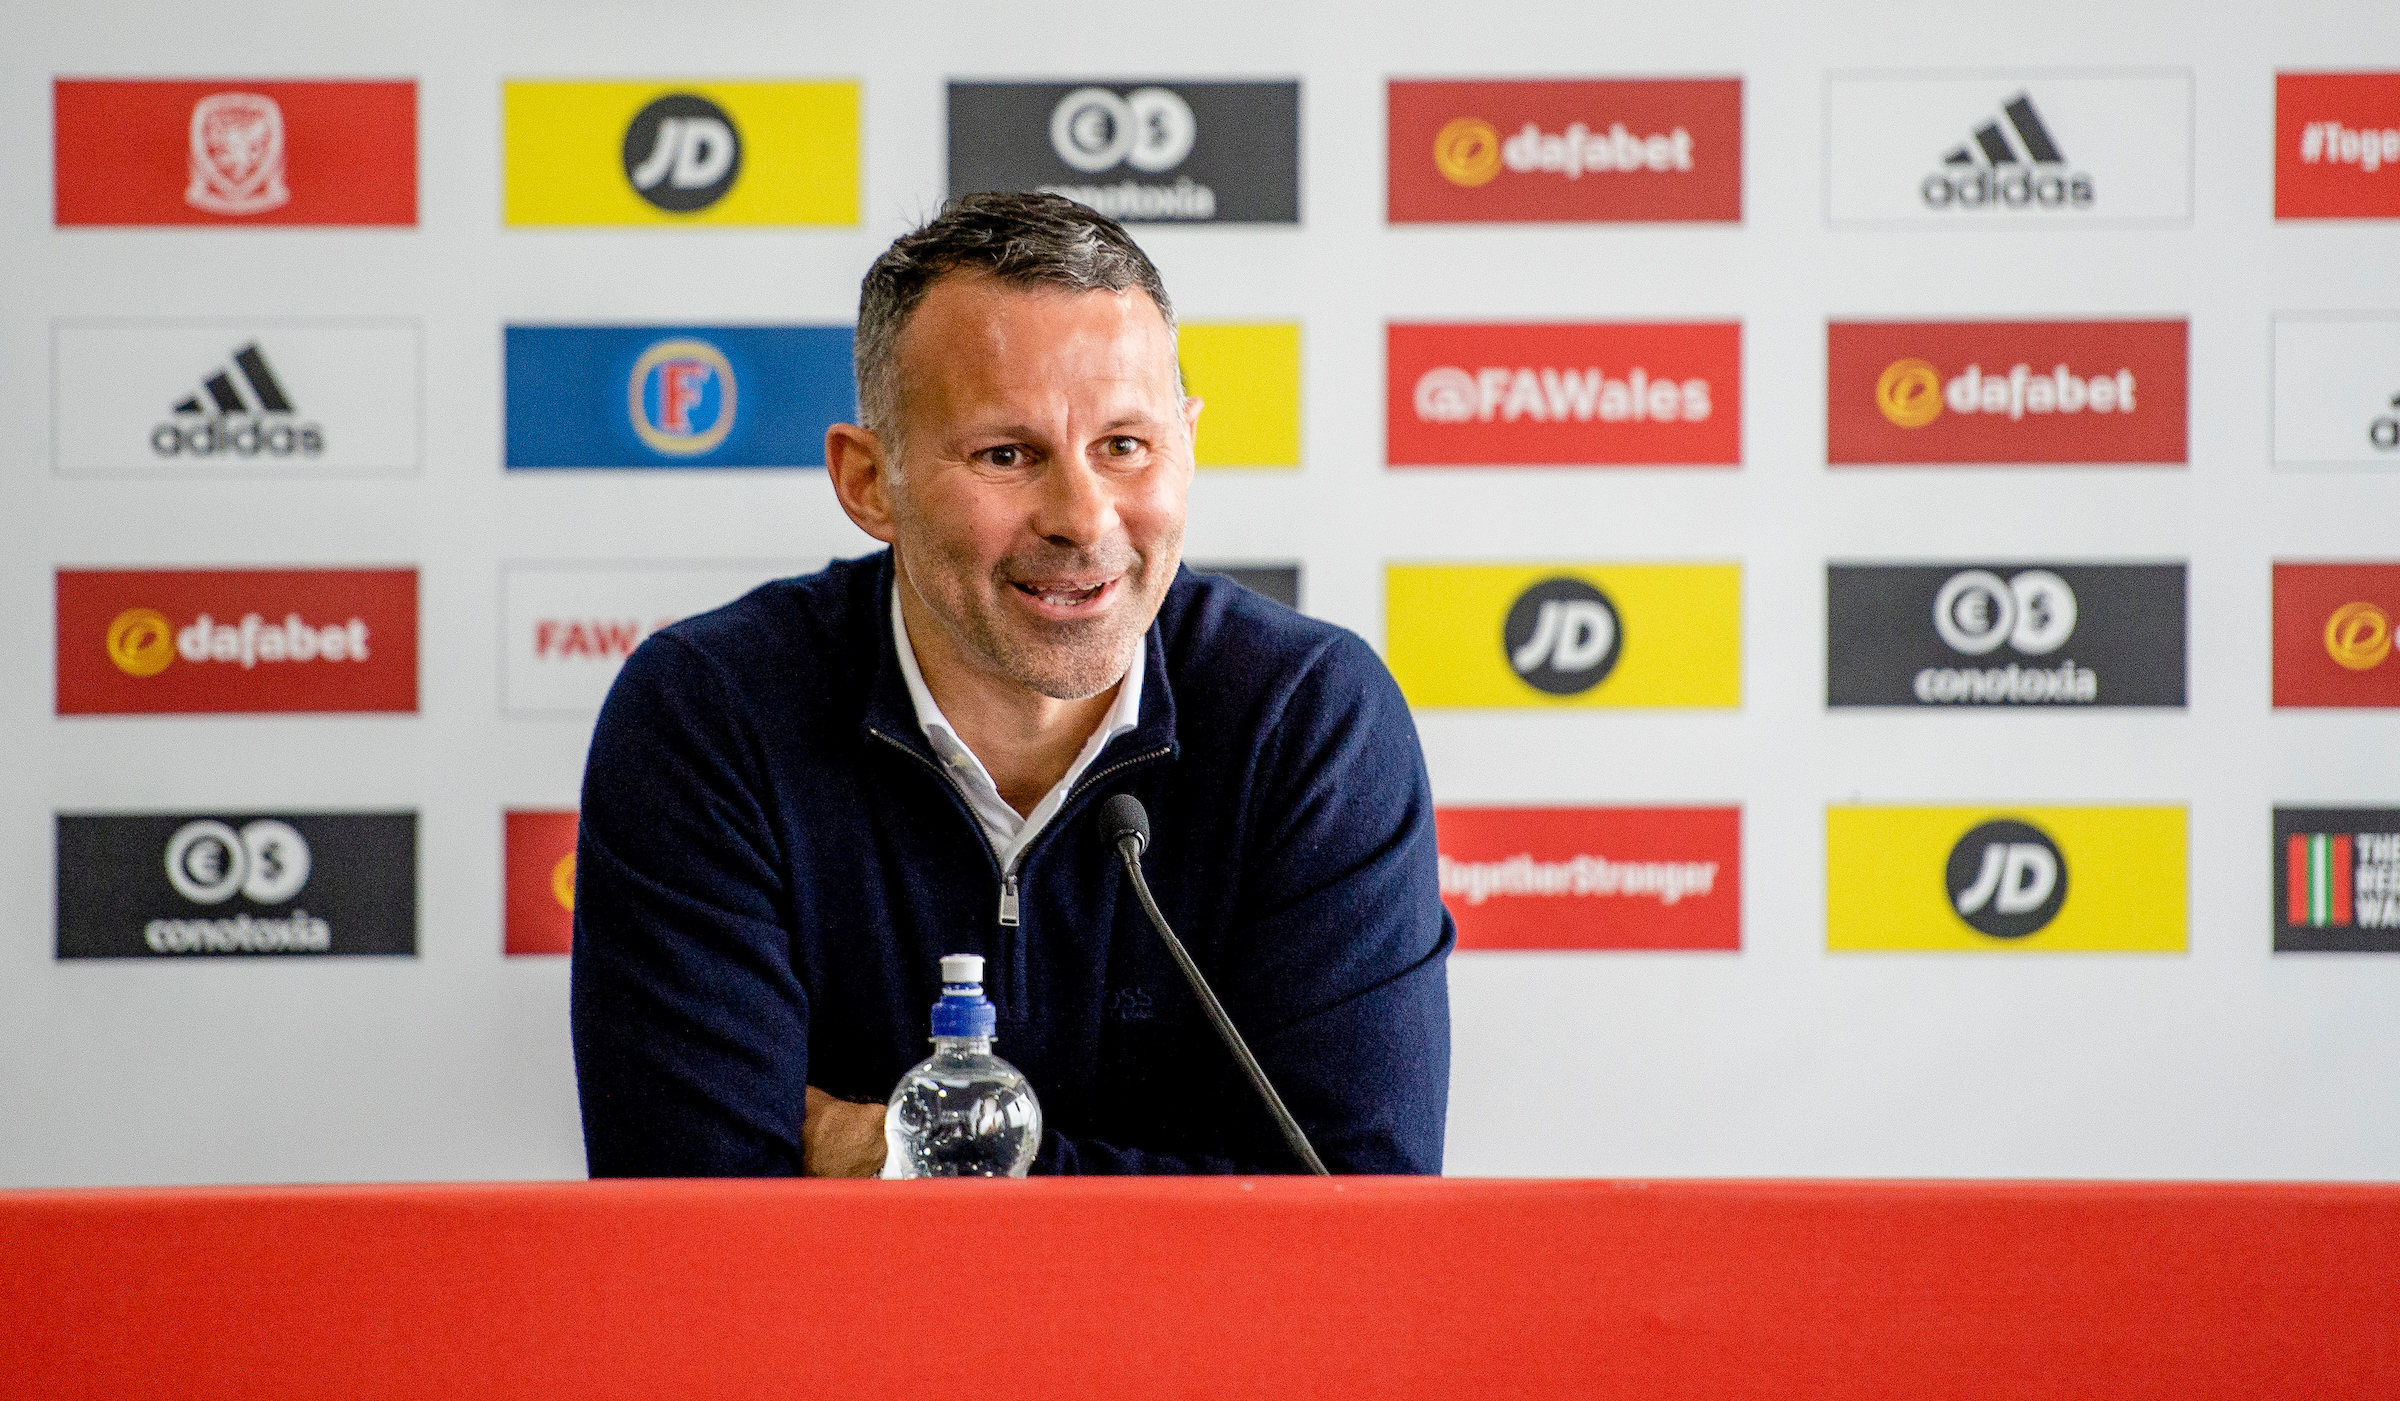 Ryan Giggs names 31-man squad for first EURO 2020 qualifier